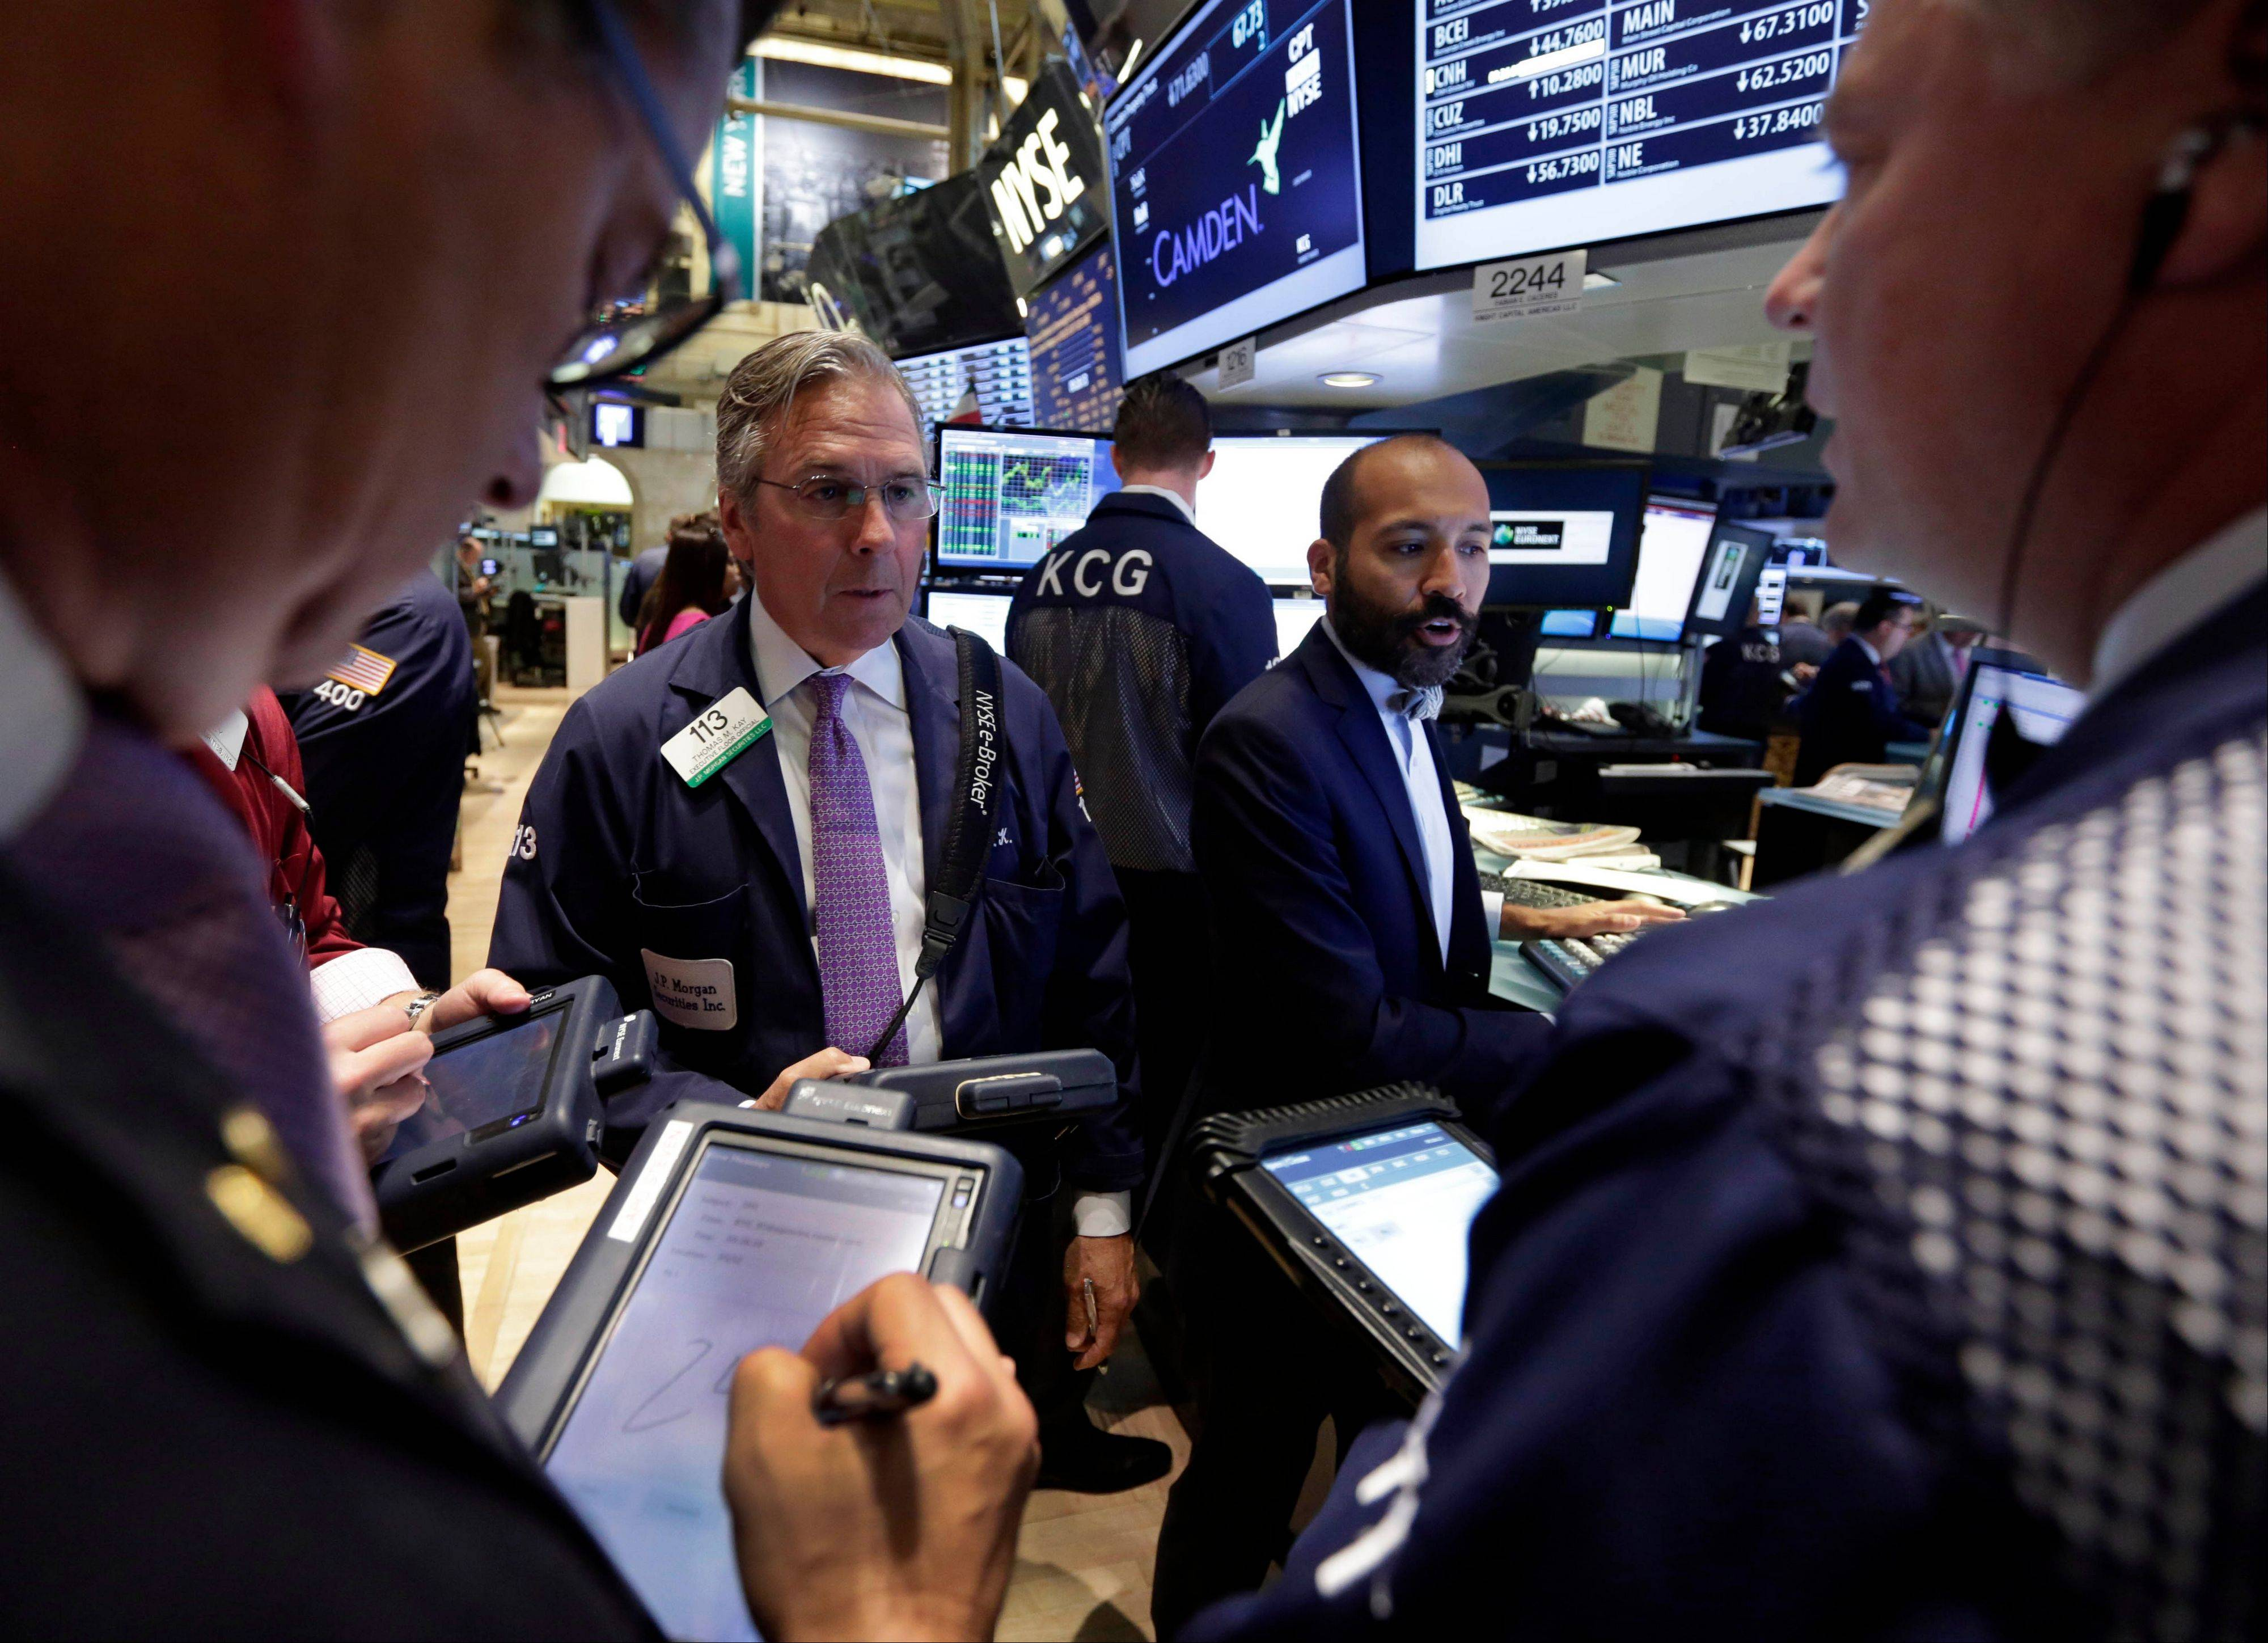 In this Wednesday, July 31, 2013, file photo, Specialist Fabian Caceres, background right, works with traders on the floor of the New York Stock Exchange. World stock markets fell Wednesday, Aug. 7, 2013 led by a plunge in Japan�s benchmark index, as expectations mounted that the U.S. central bank will begin to phase out its monetary stimulus next month.